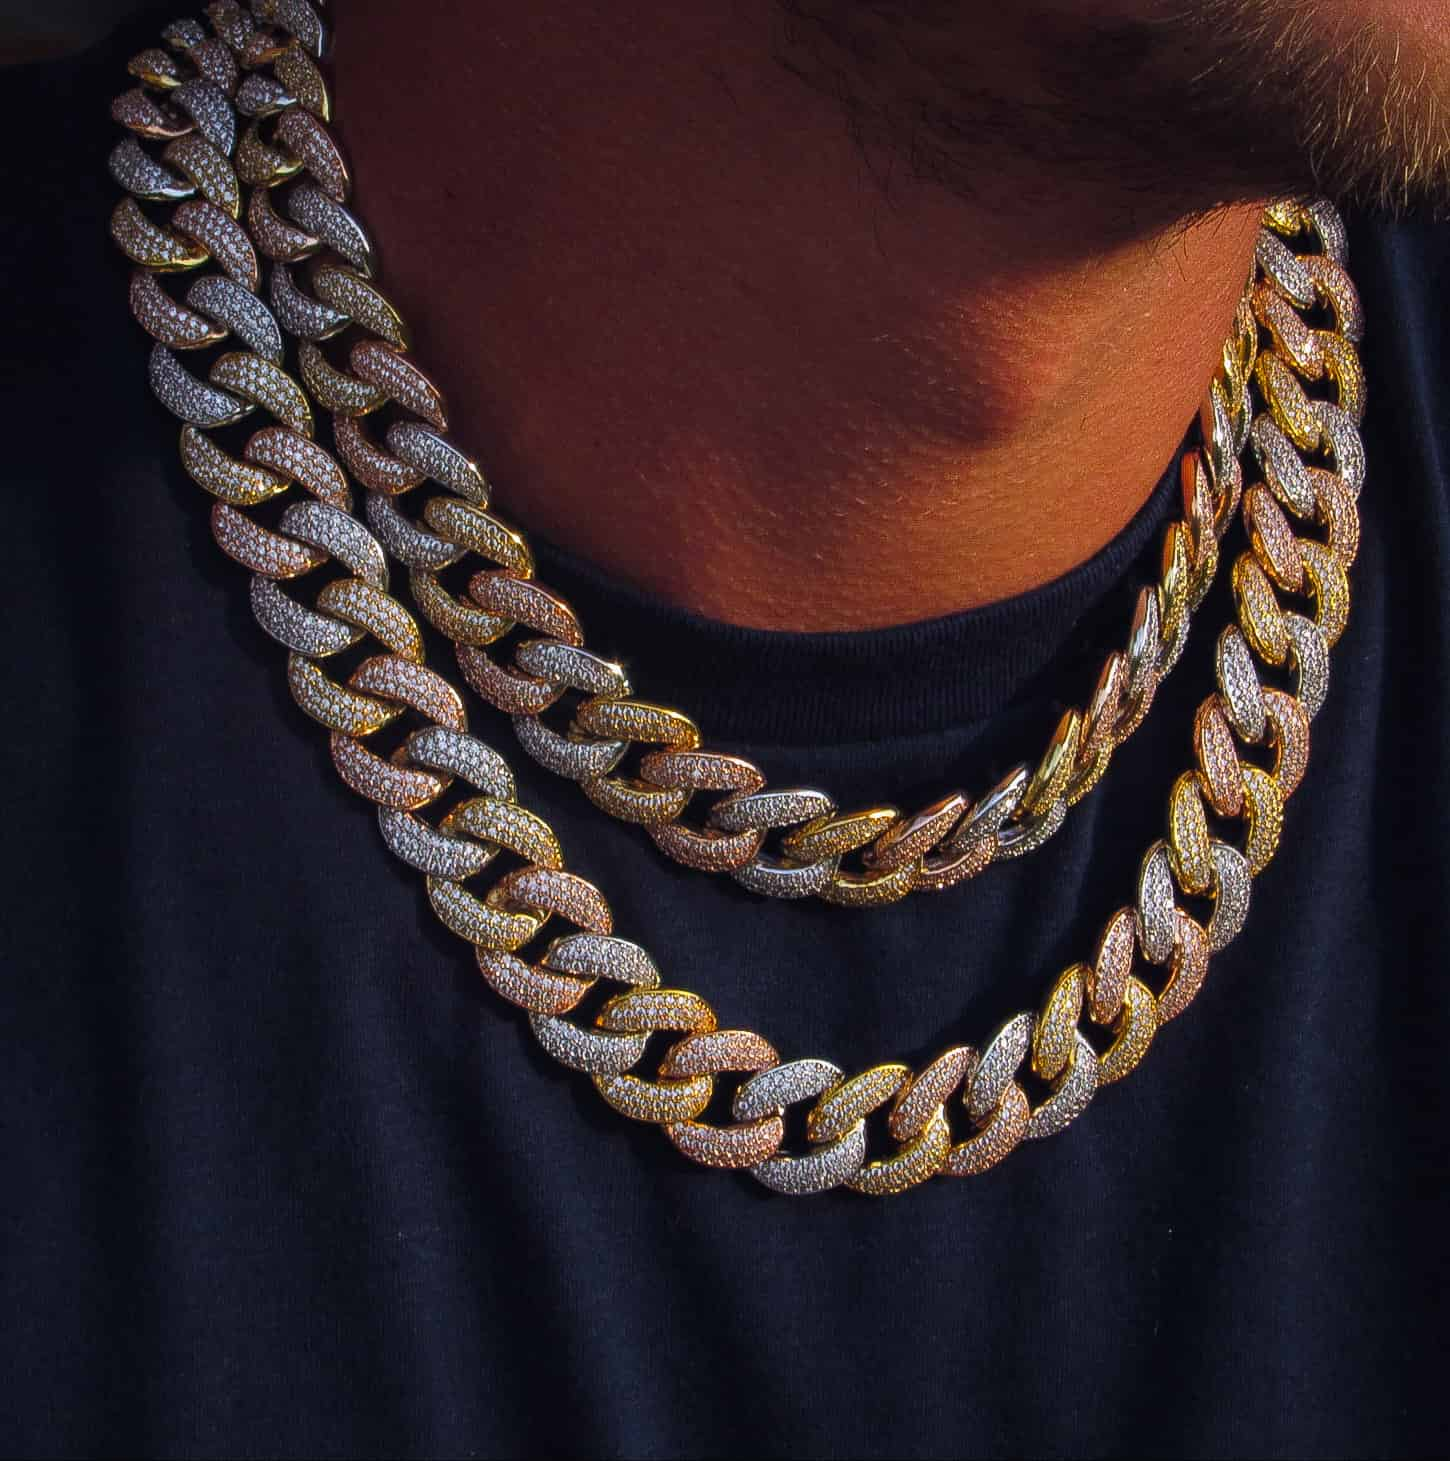 19mm Three Row Multicolored Cuban Link Chain